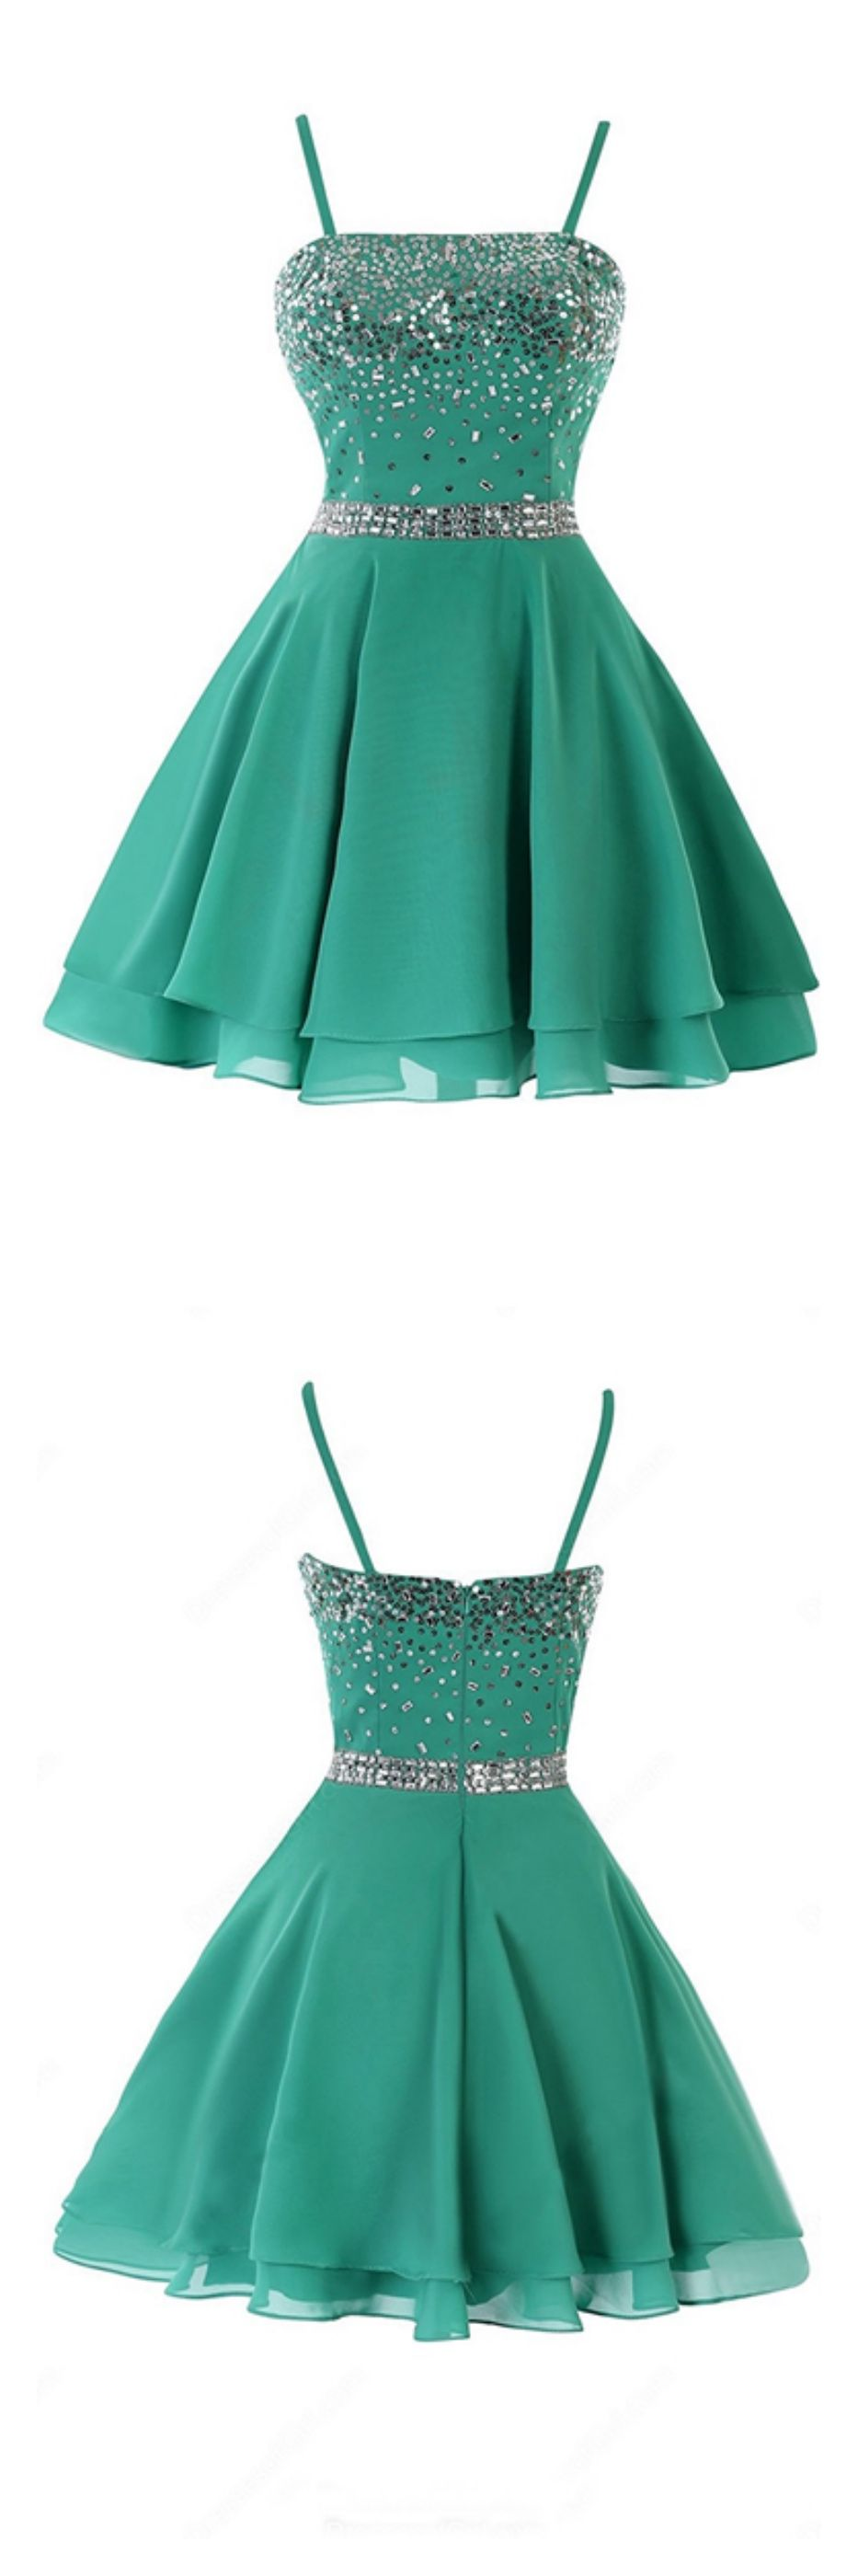 Green spaghetti straps layers homecoming dressesed in